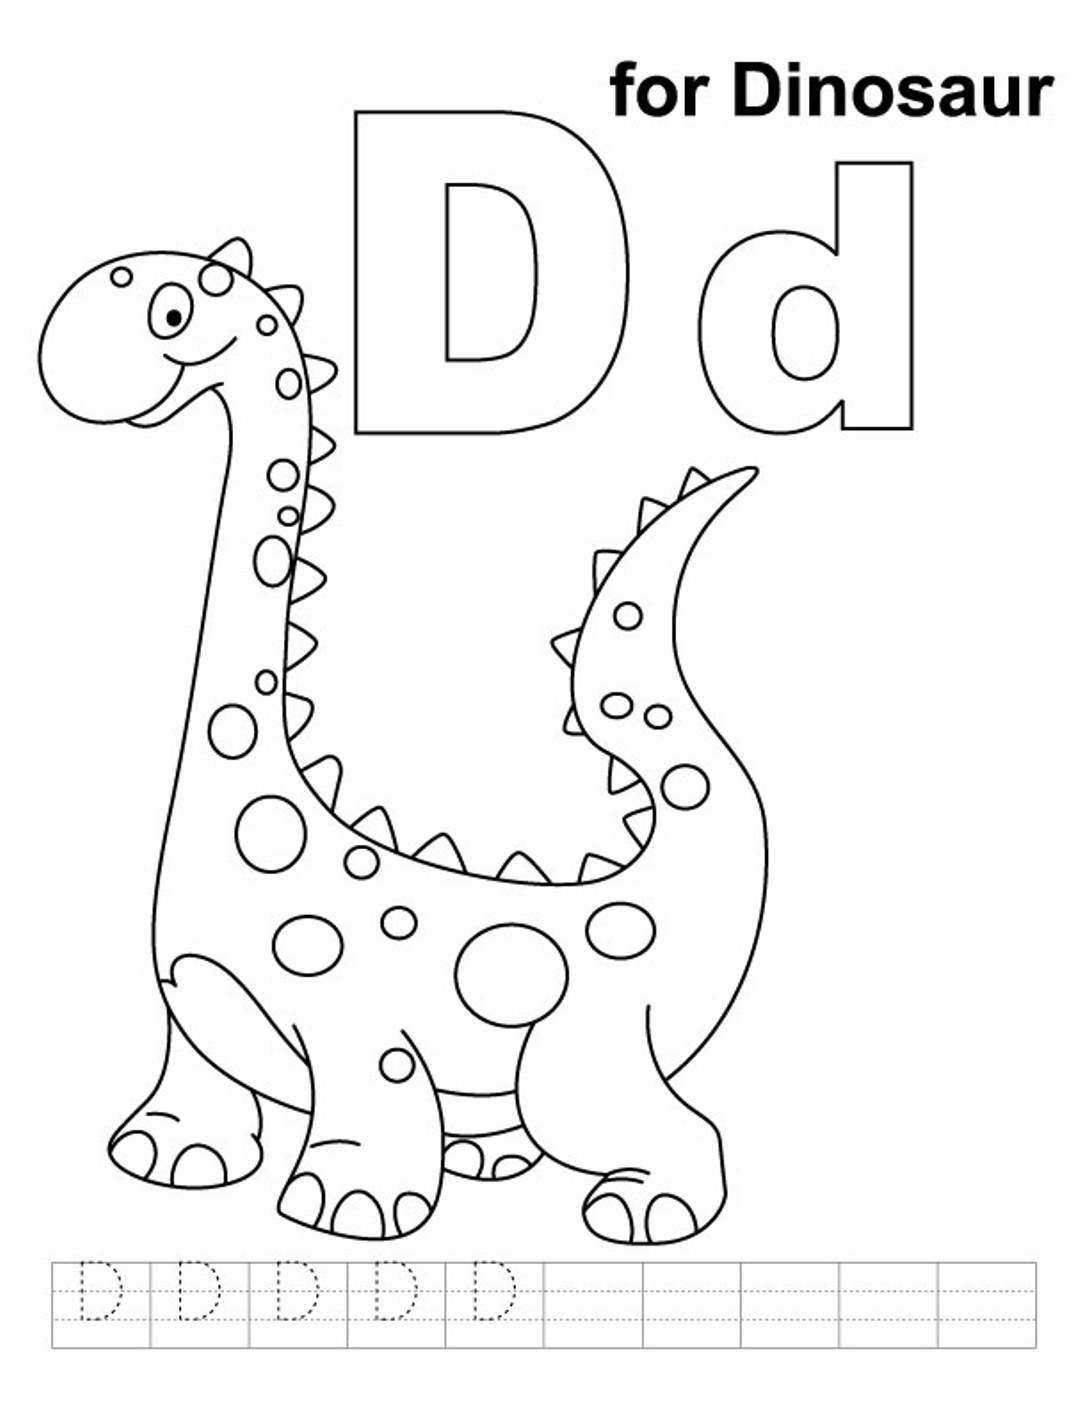 Letter D Coloring Pages - Preschool and Kindergarten